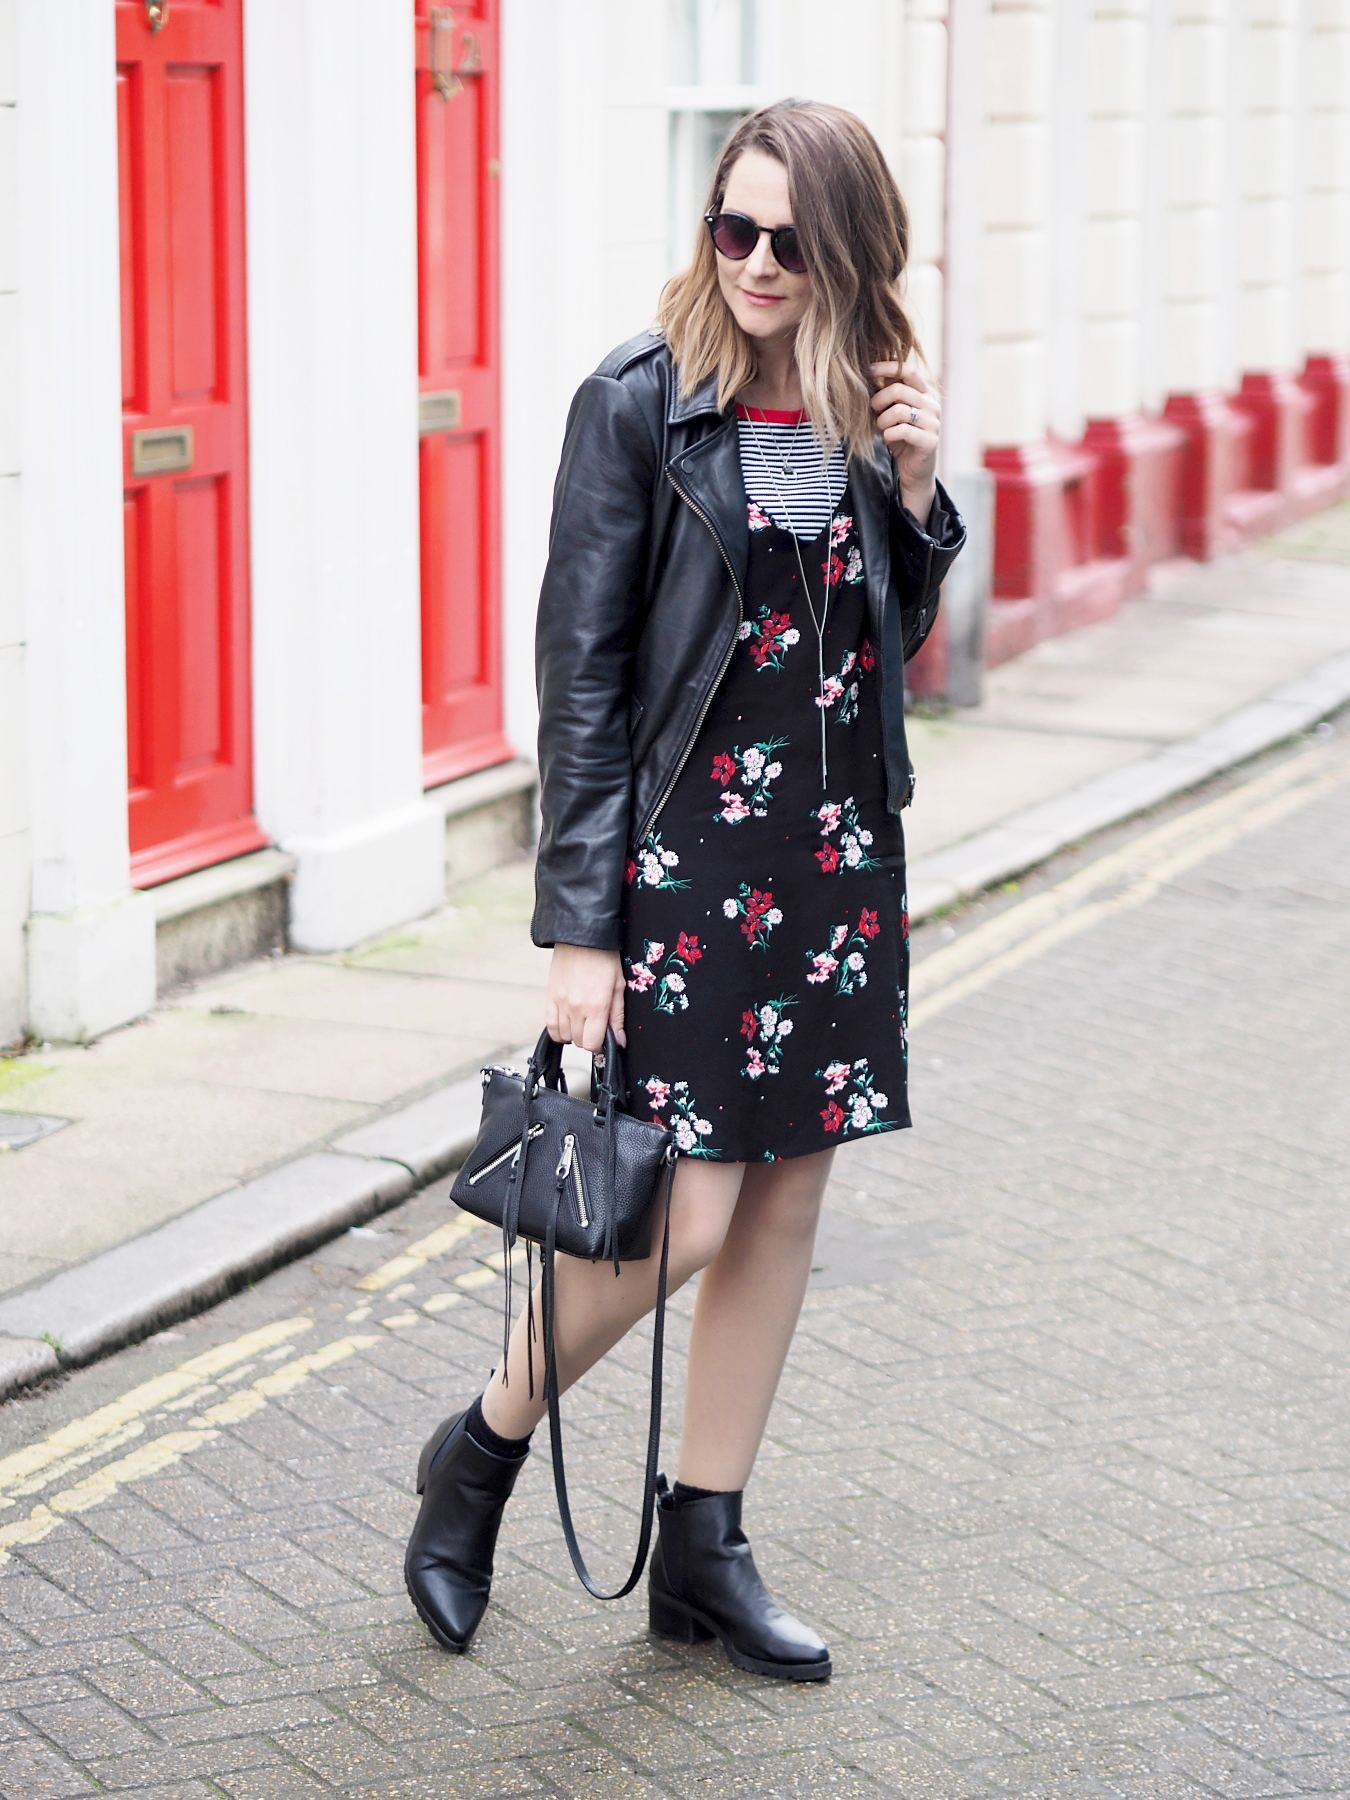 new look floral slip dress with striped tshirt and black biker jacket outfit summer